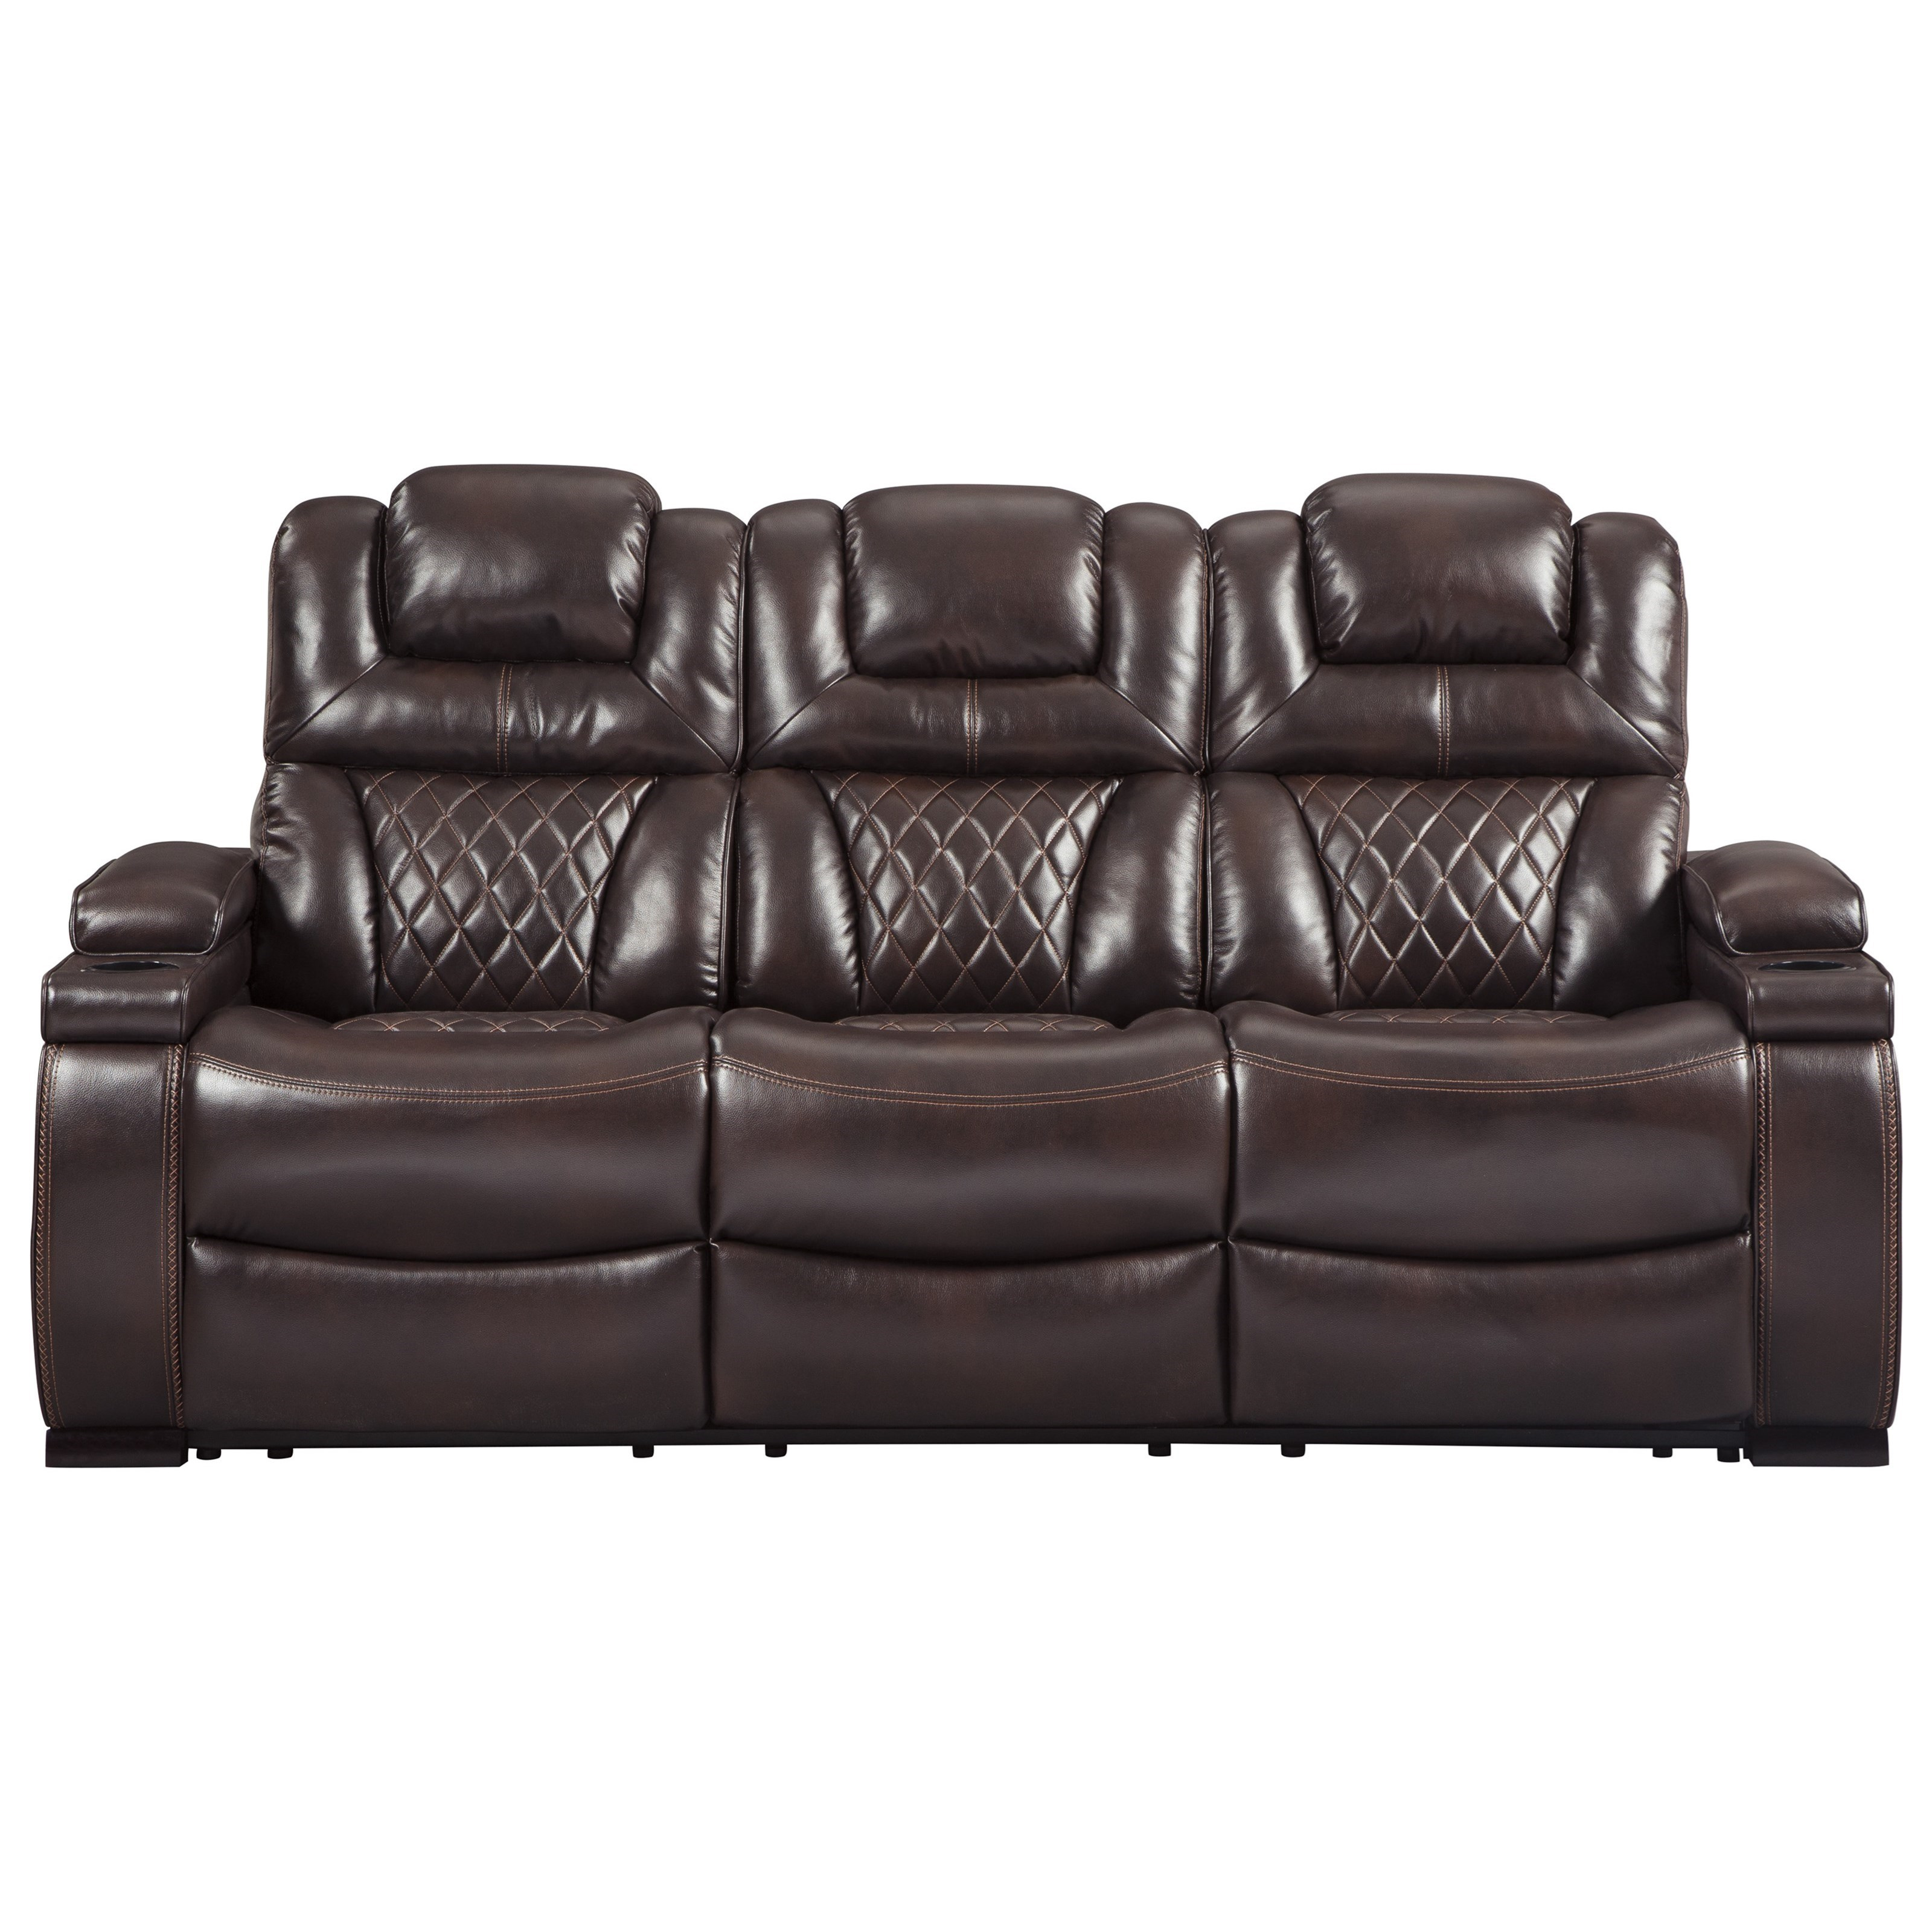 Warnerton Power Reclining Sofa by Signature Design by Ashley at Northeast Factory Direct